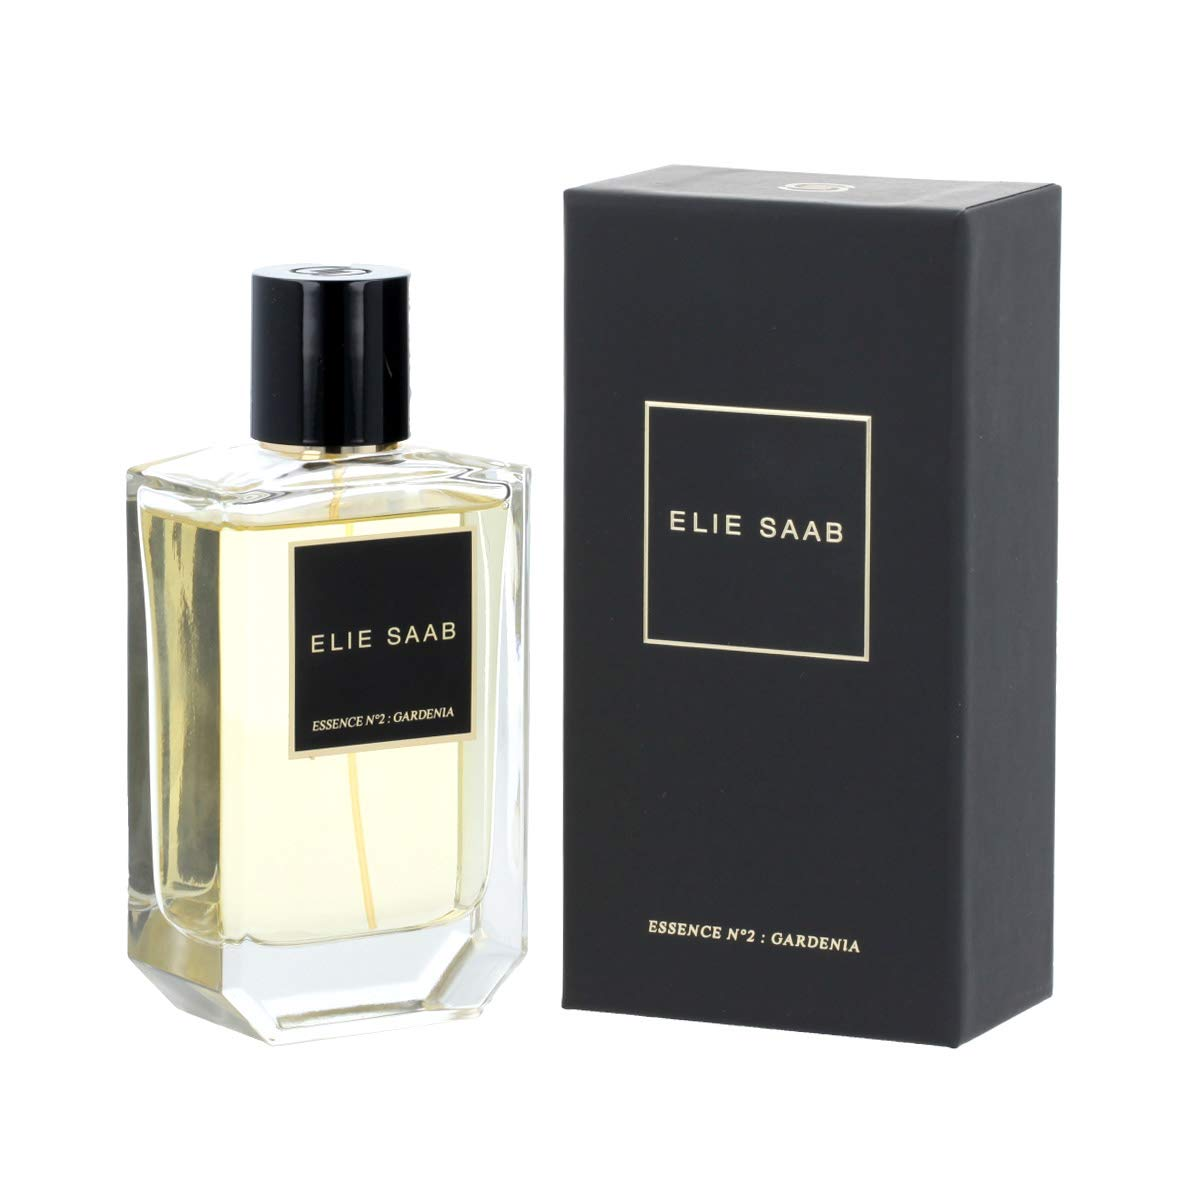 Amazon.com : Elie Saab Essence No 2 Gardenia By Elie Saab Eau De Parfum Spray 3.3 oz : Beauty